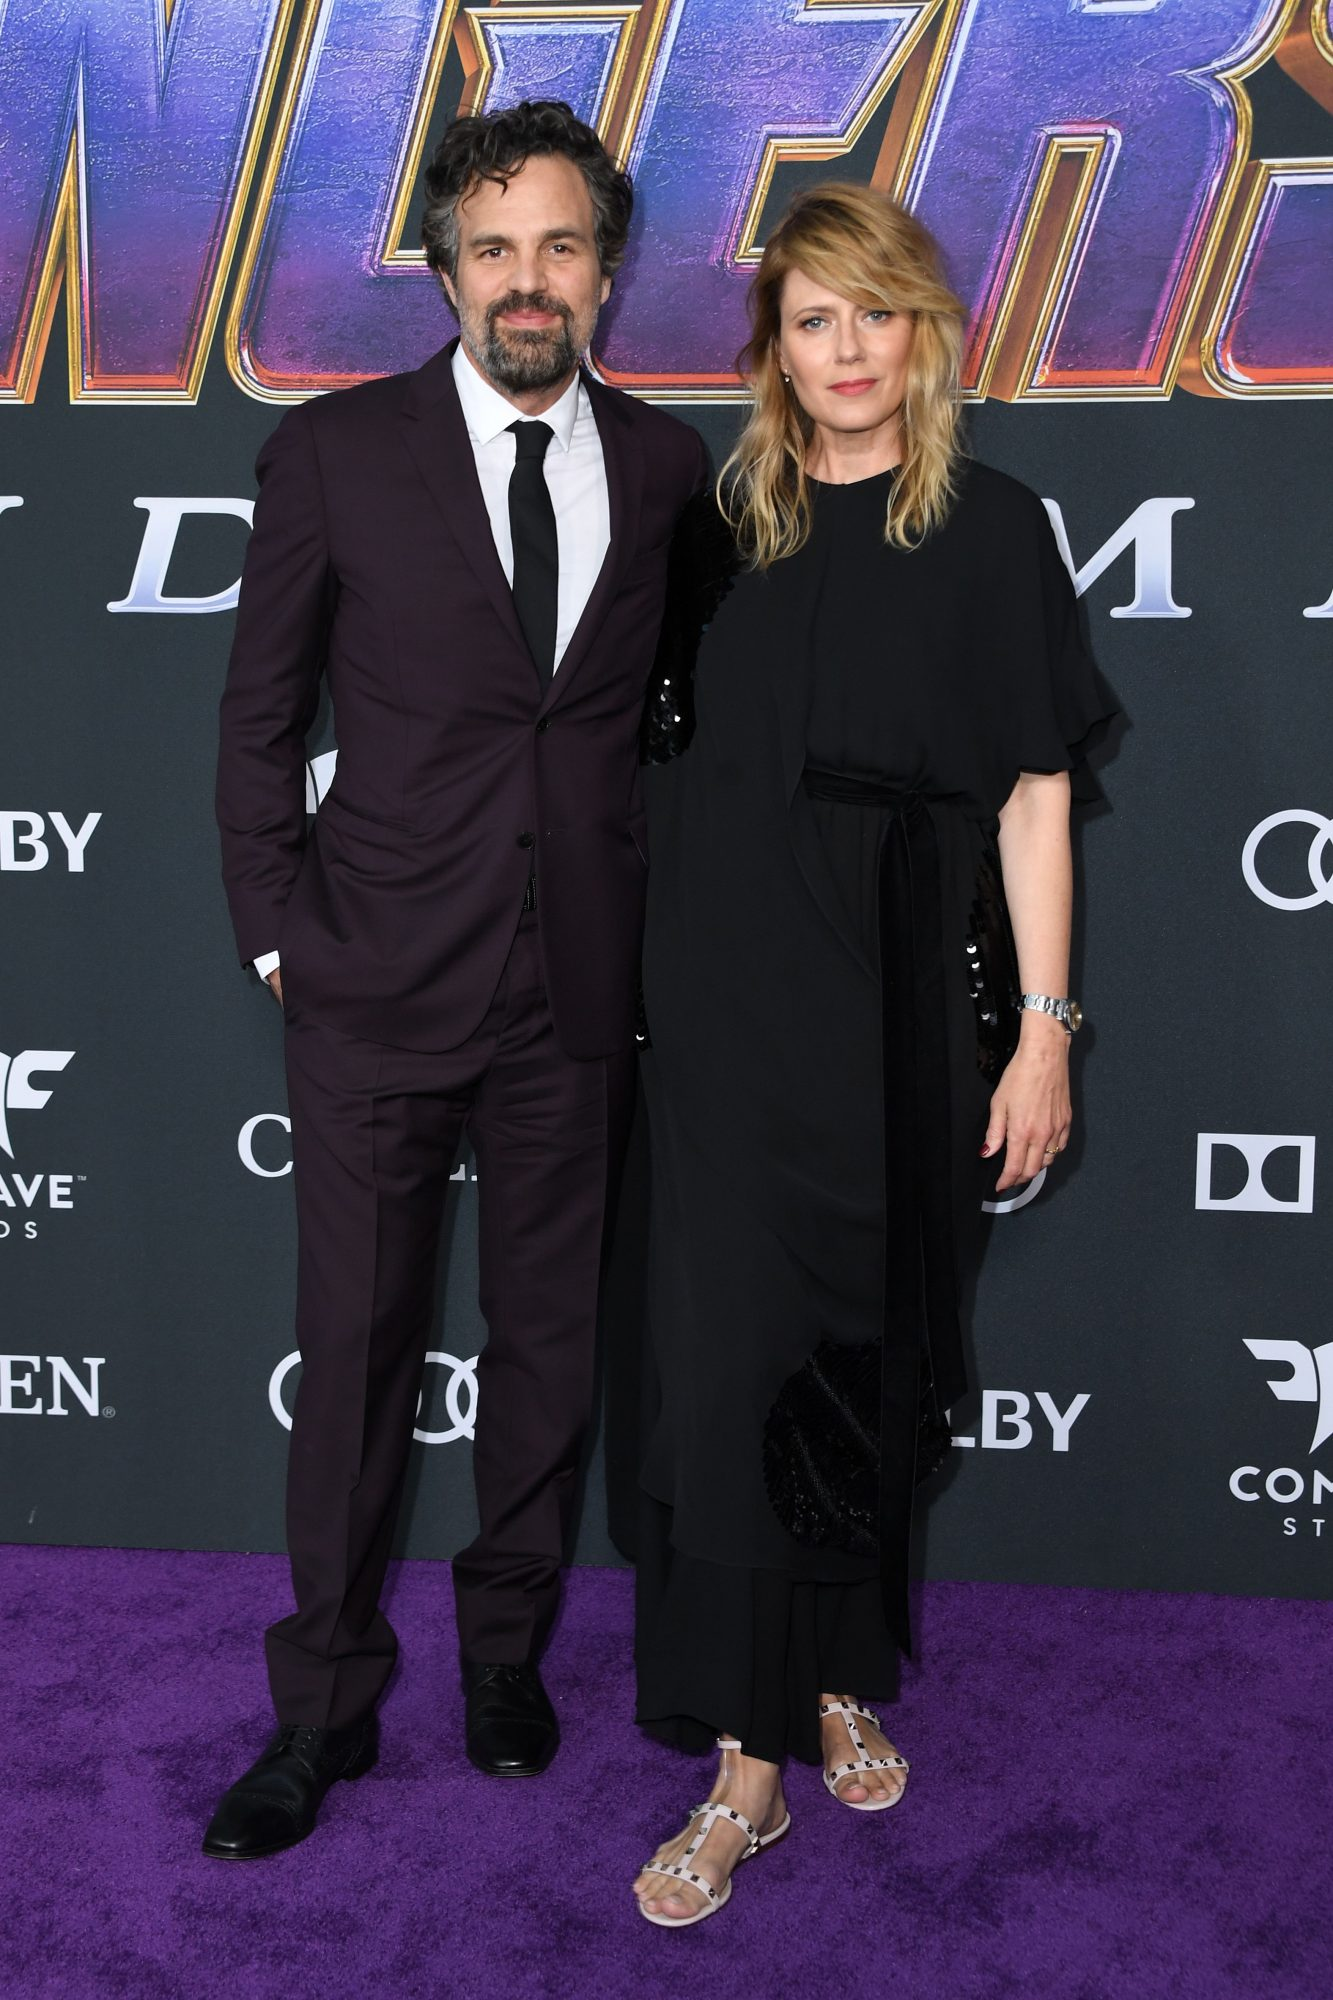 """US actor Mark Ruffalo and US actress Sunrise Coigney arrives for the World premiere of Marvel Studios' """"Avengers: Endgame"""" at the Los Angeles Convention Center on April 22, 2019 in Los Angeles. (Photo by VALERIE MACON/AFP/Getty Images)"""